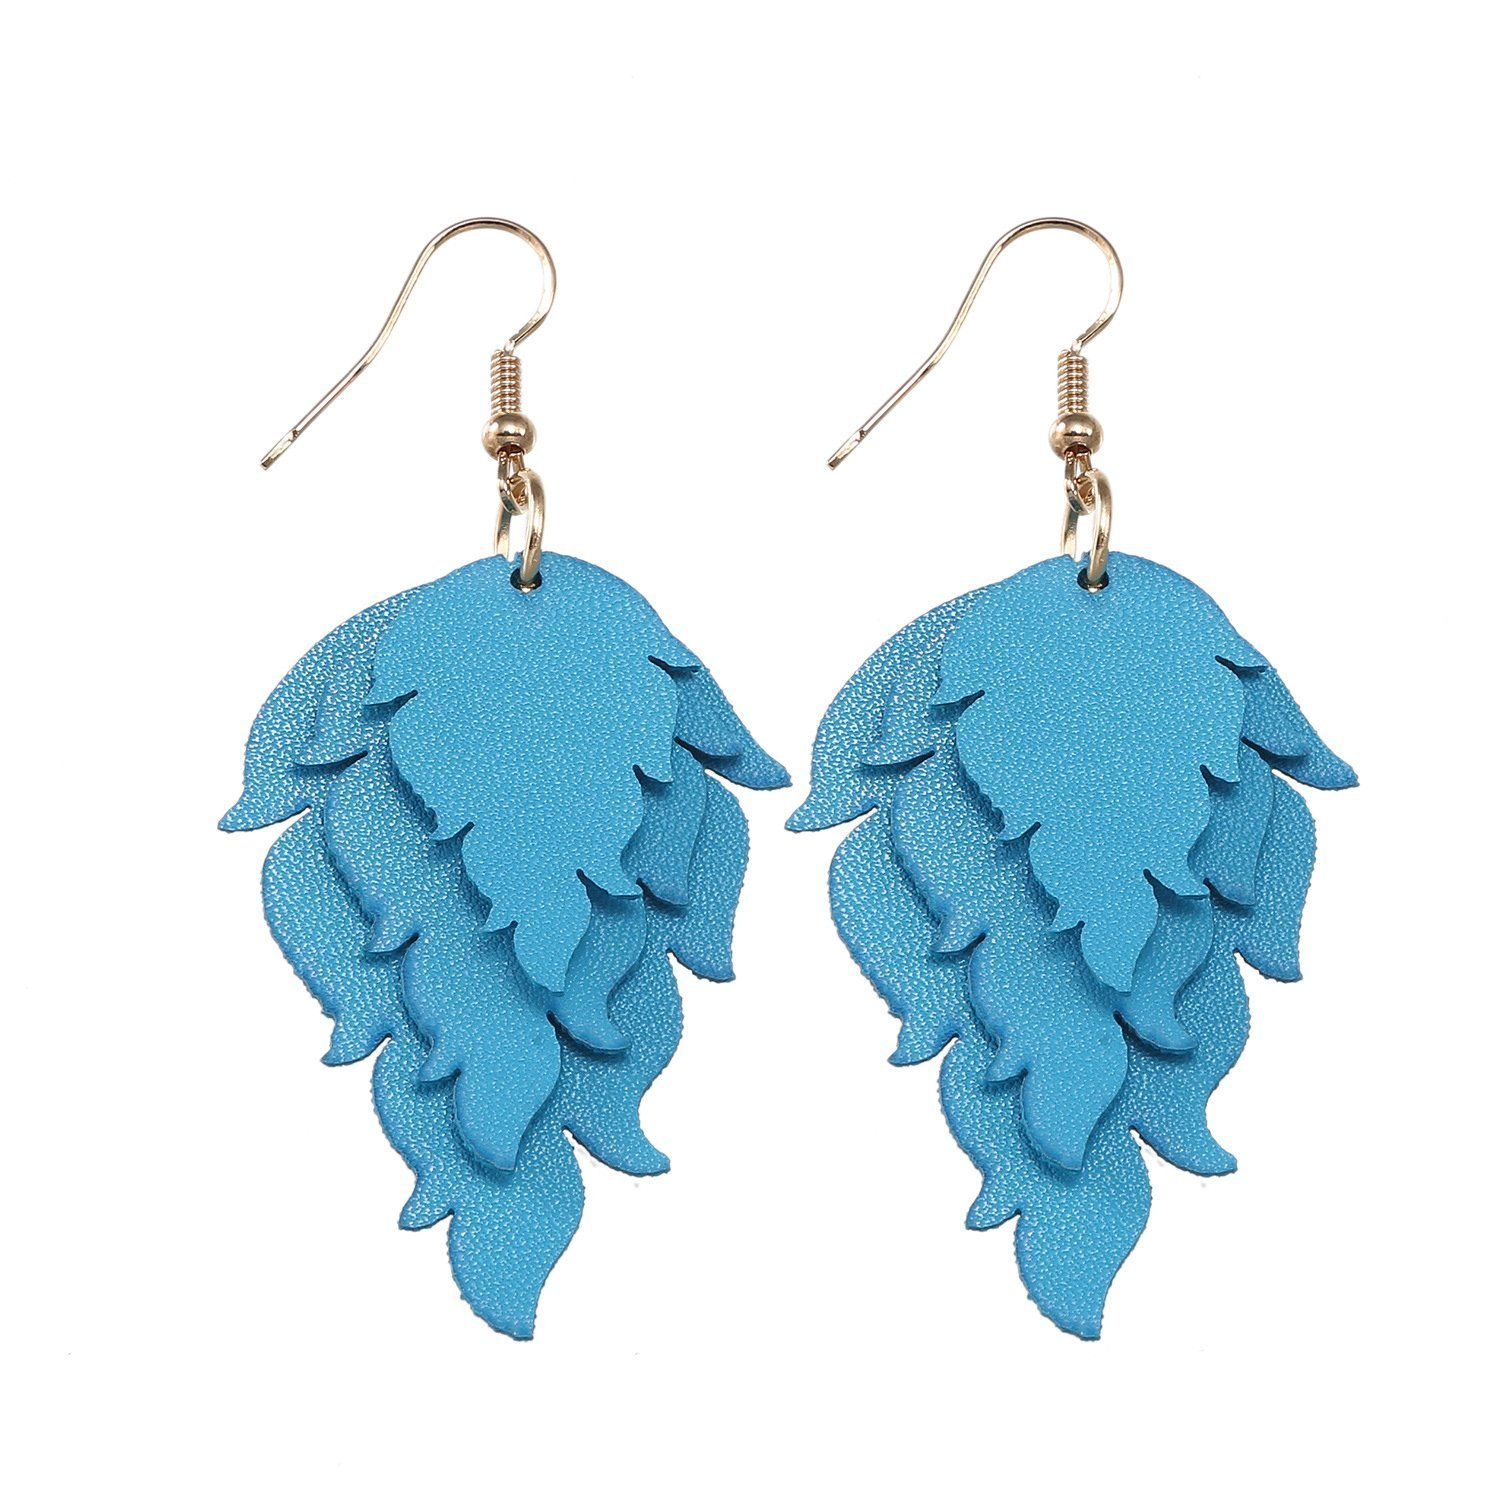 TIDOO Jewelry Womens Smooth Faux Leather Layered Fire Dangle Earrings for Girl